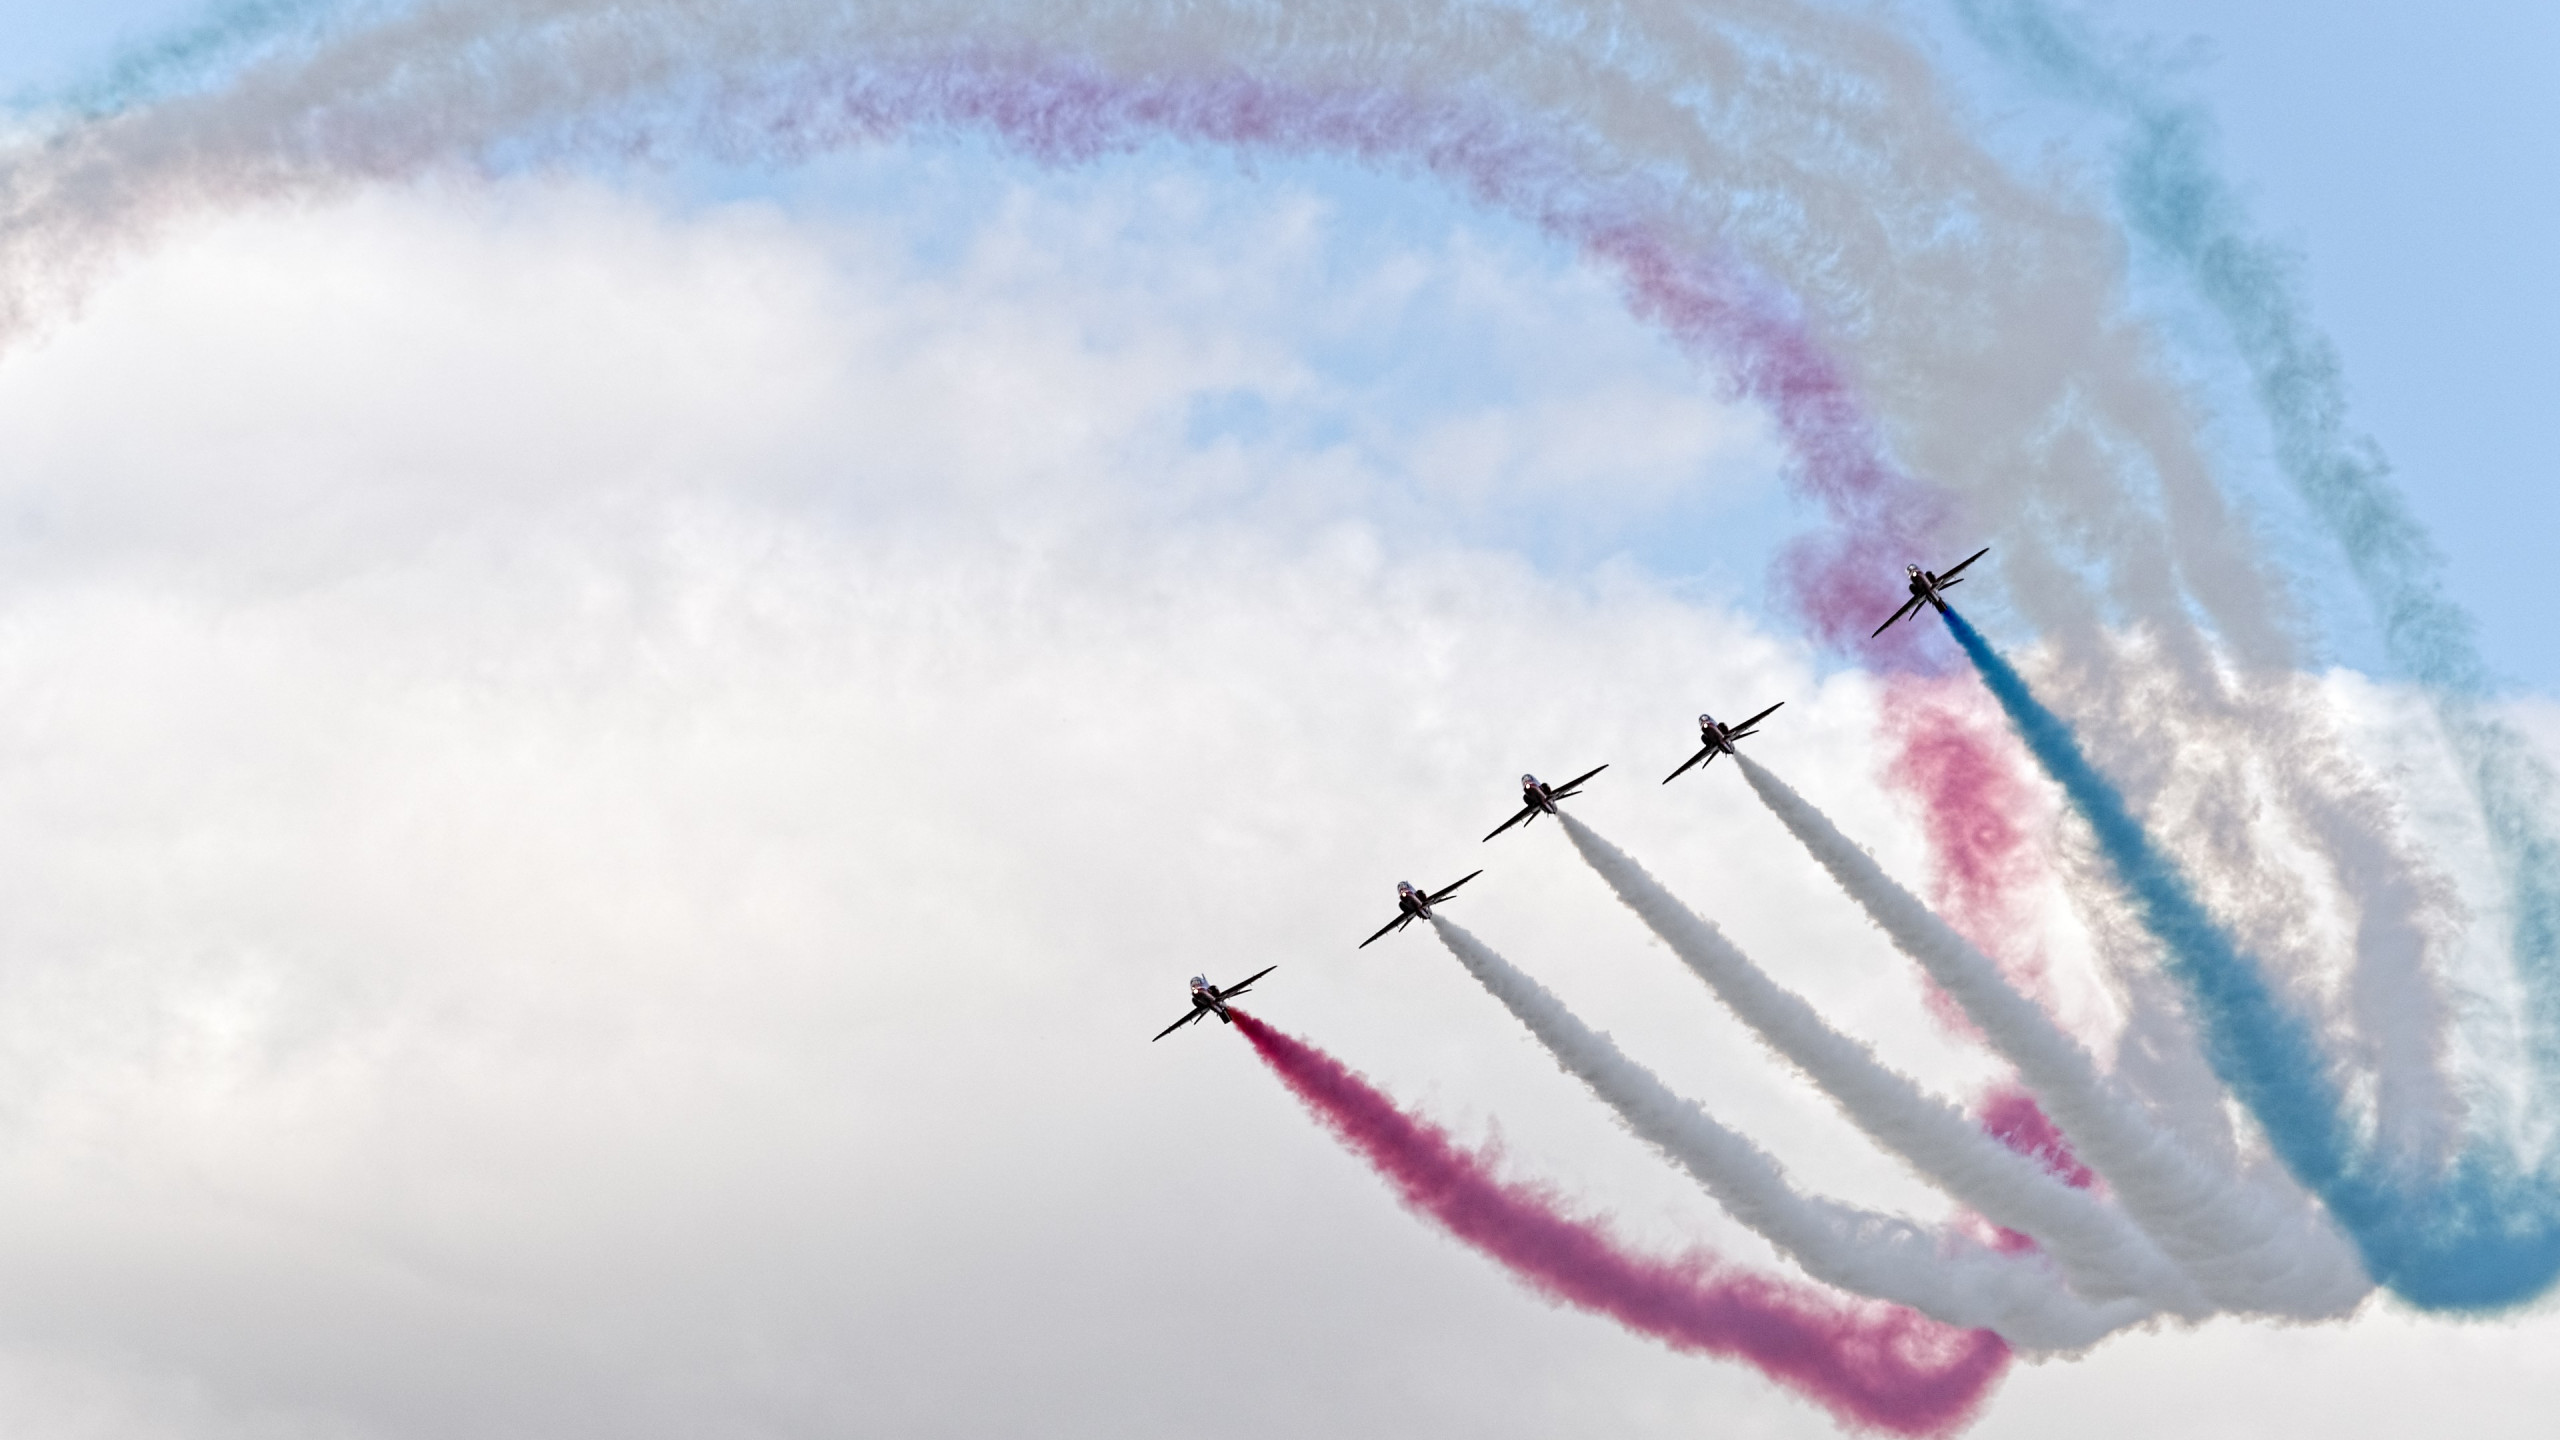 Red Arrows at Sywell Air Show wallpaper 2560x1440